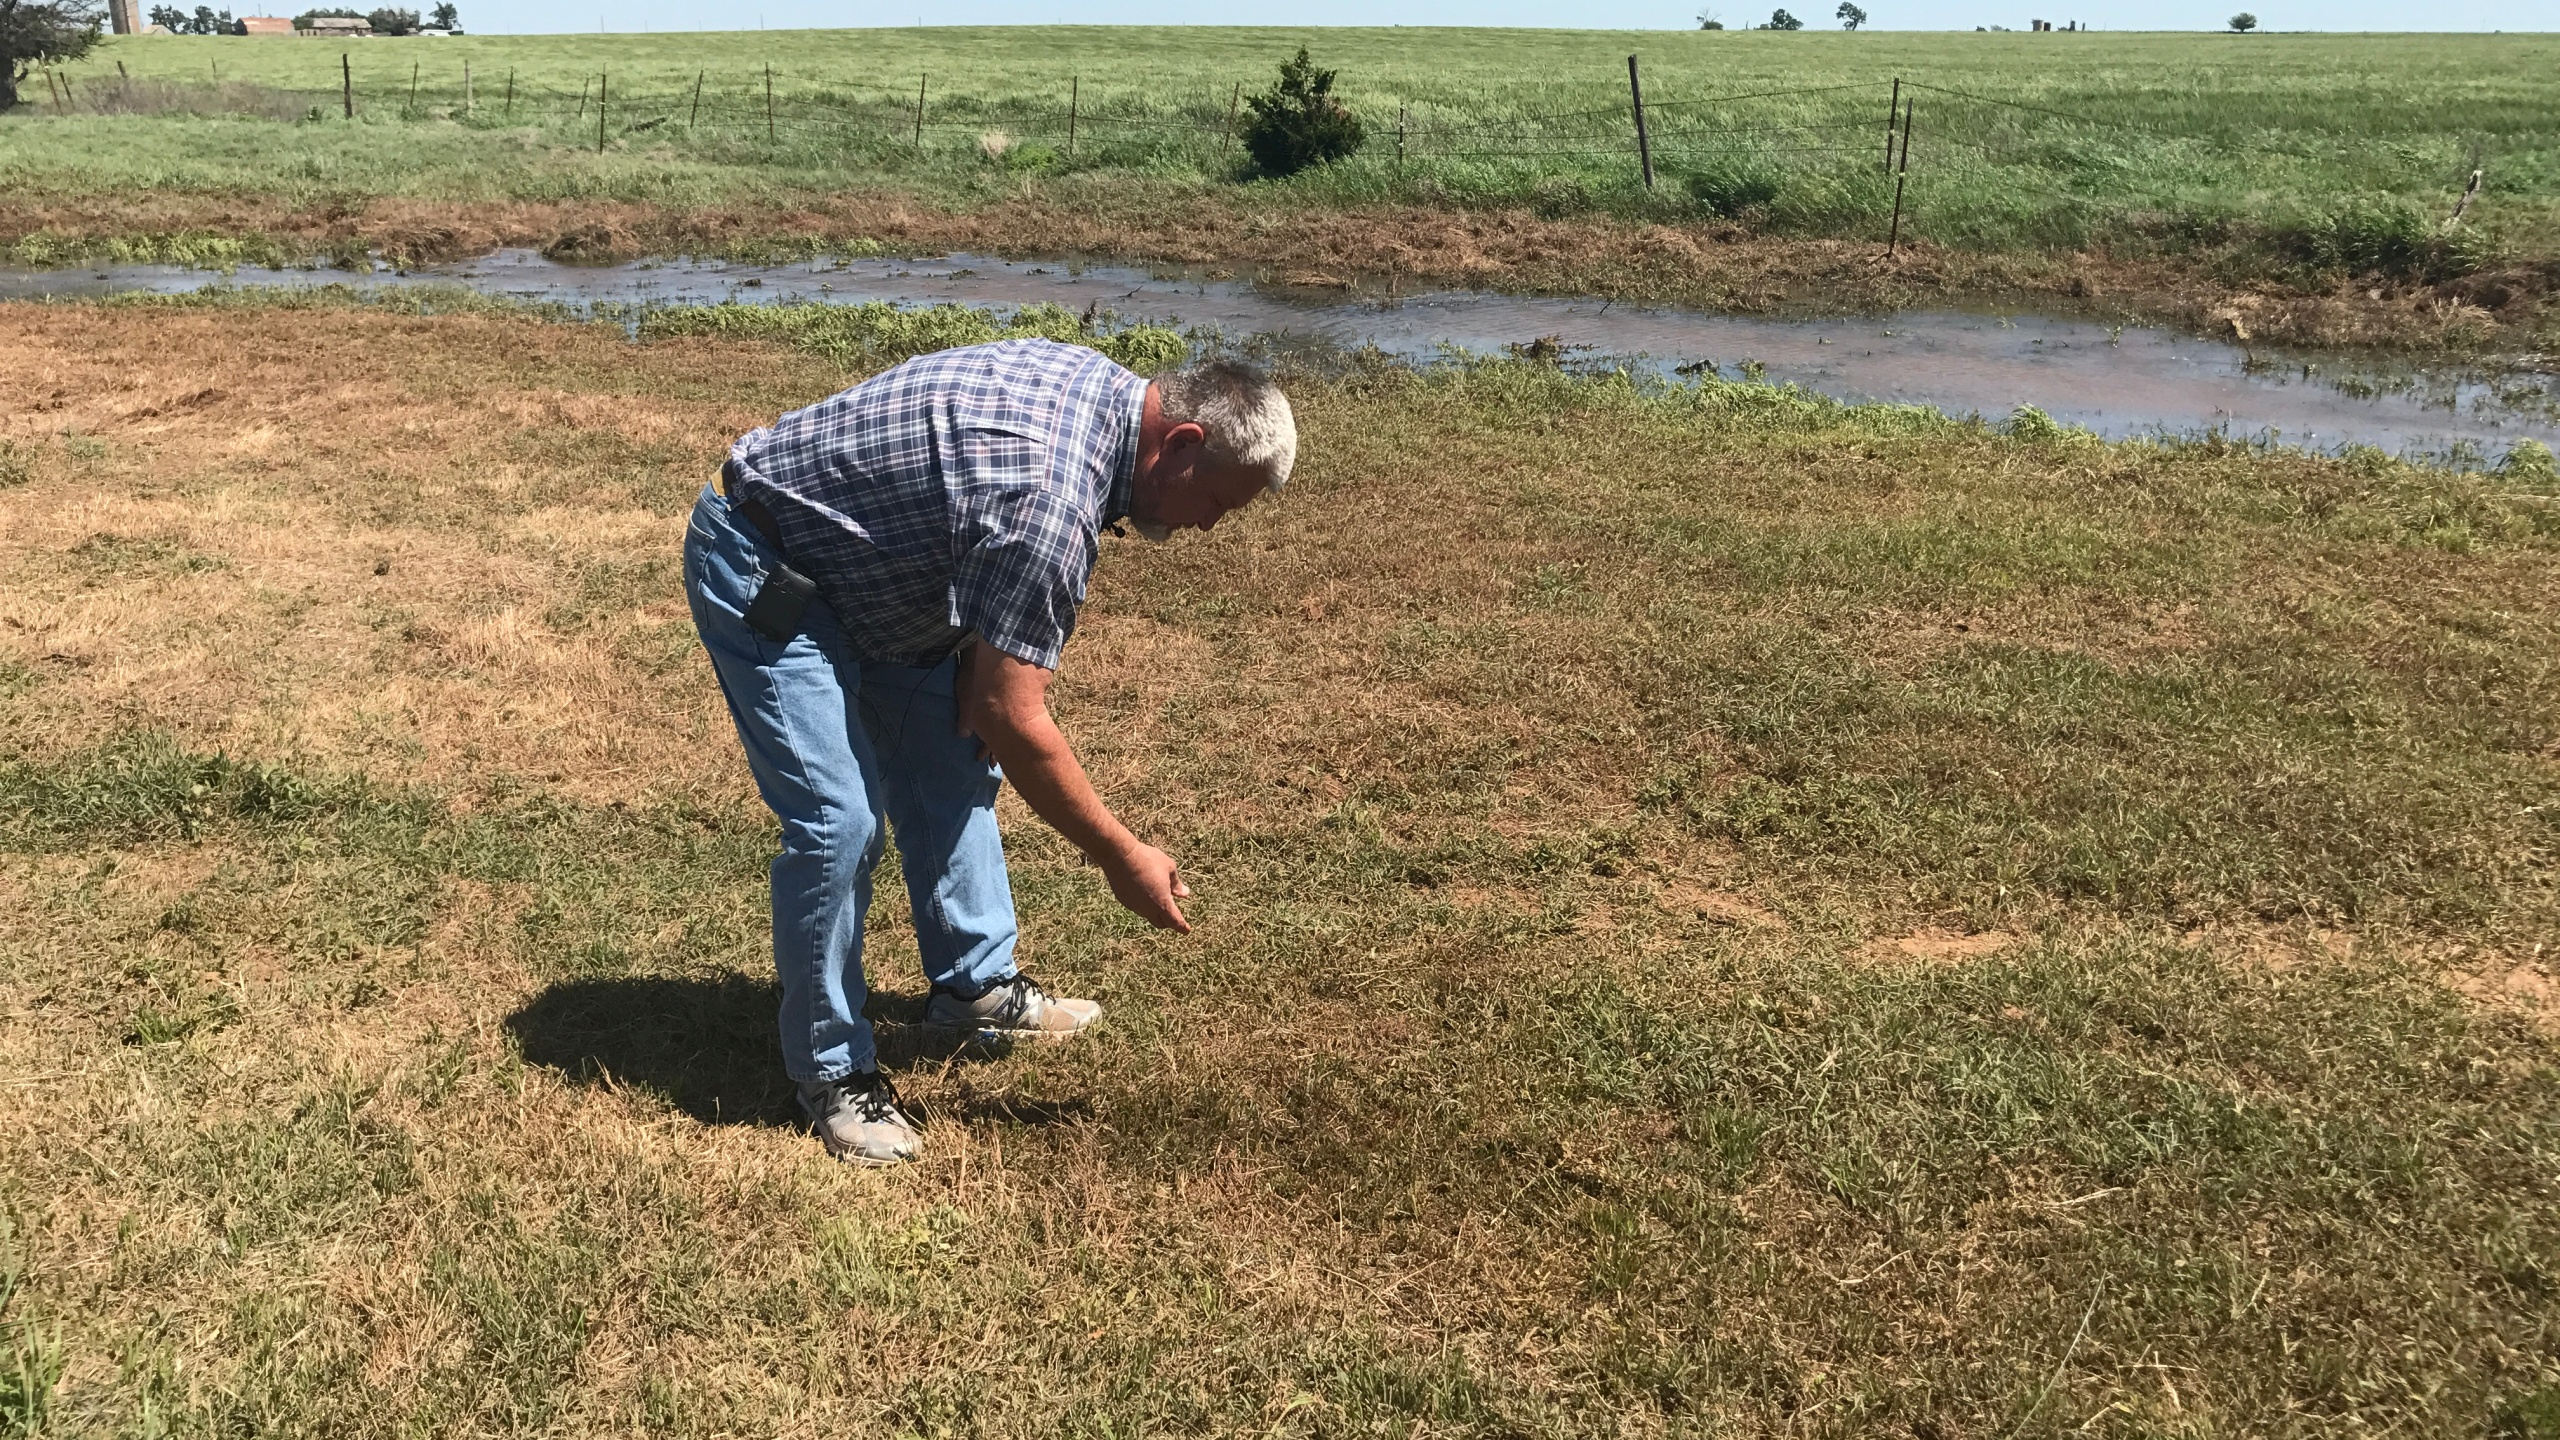 Kingfisher County farmer and rancher Steve Pope checks his land for crude oil after pipeline leak